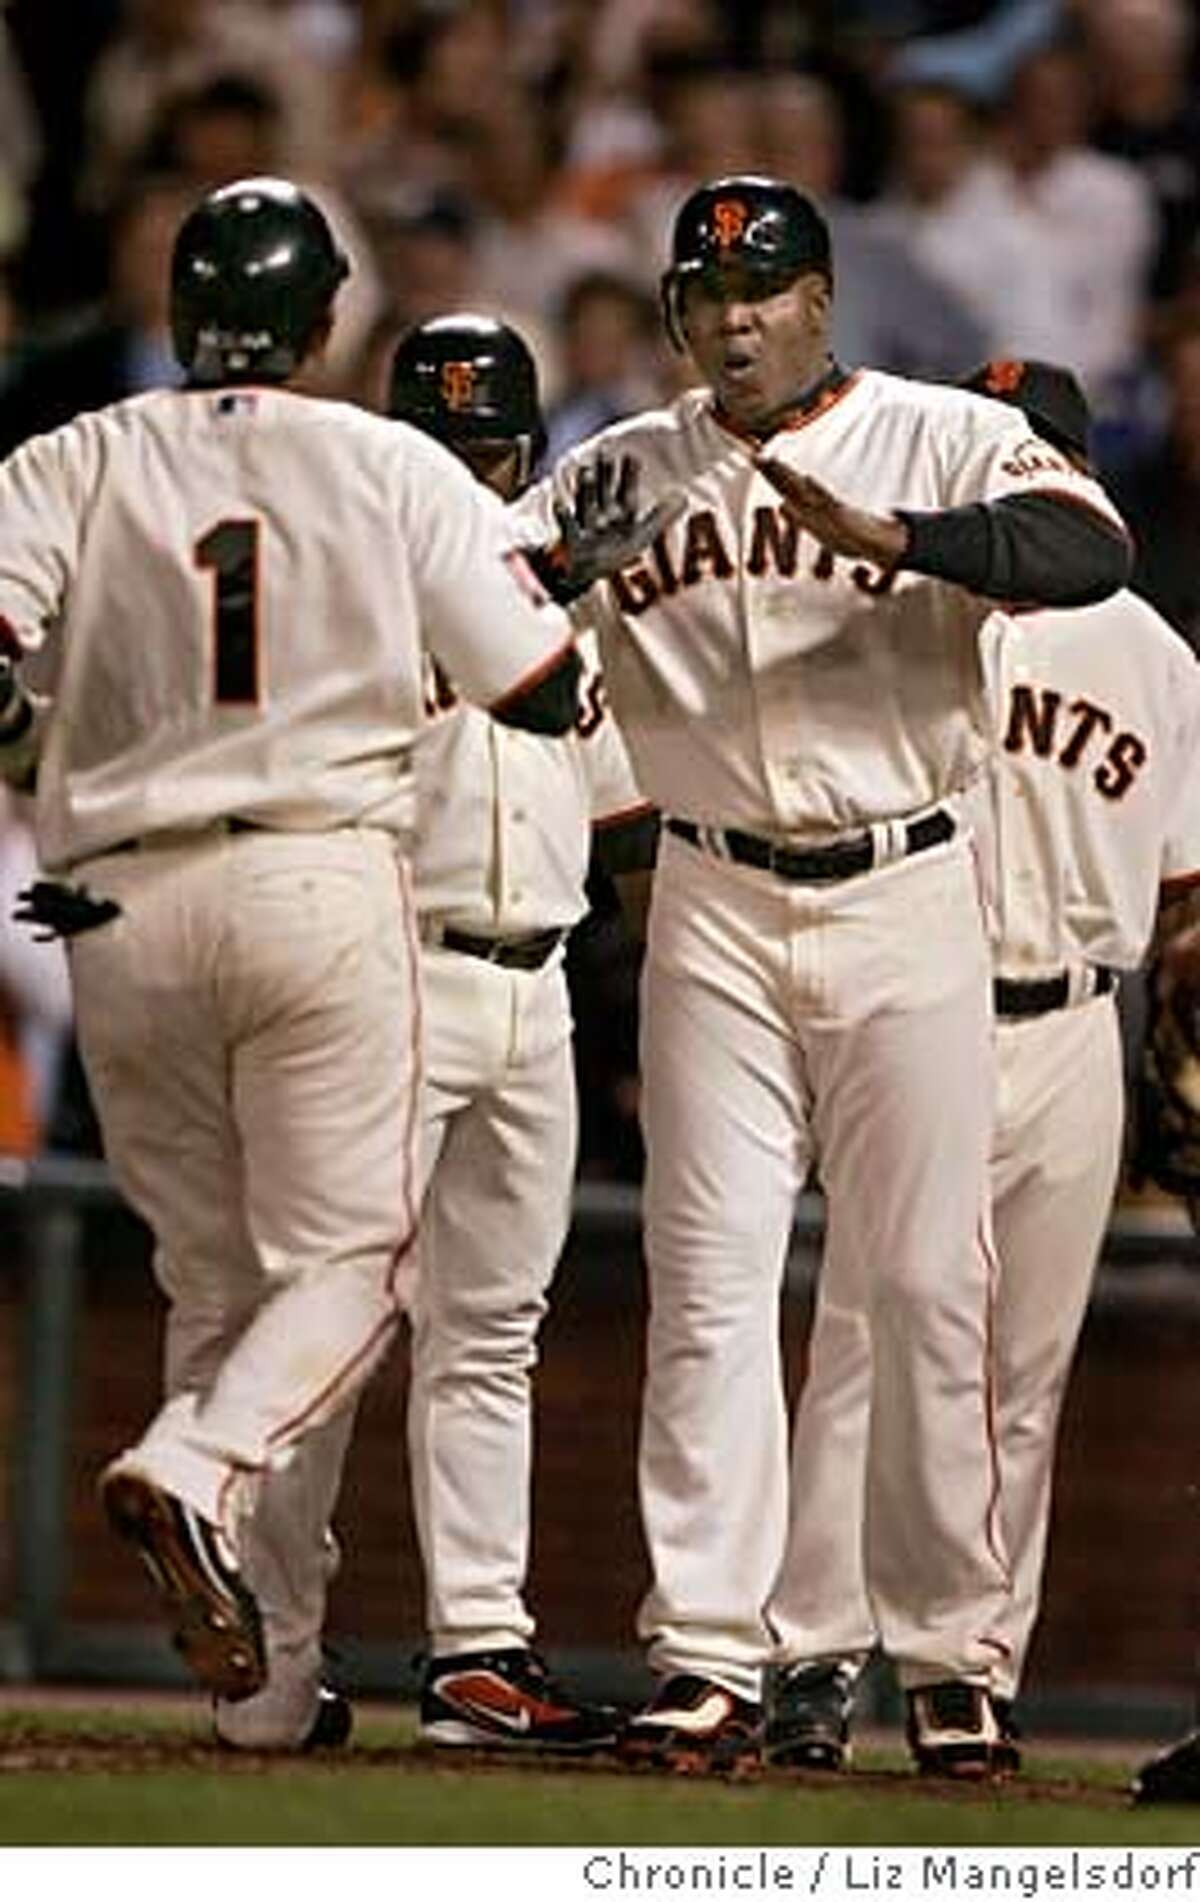 Barry Bonds greets Bengie Molina at home plate after Molina hits his second home run in the 5th inning. San Francisco Giants play the New York Mets in ATT Park on May 7, 2007. Liz Mangelsdorf/ The Chronicle